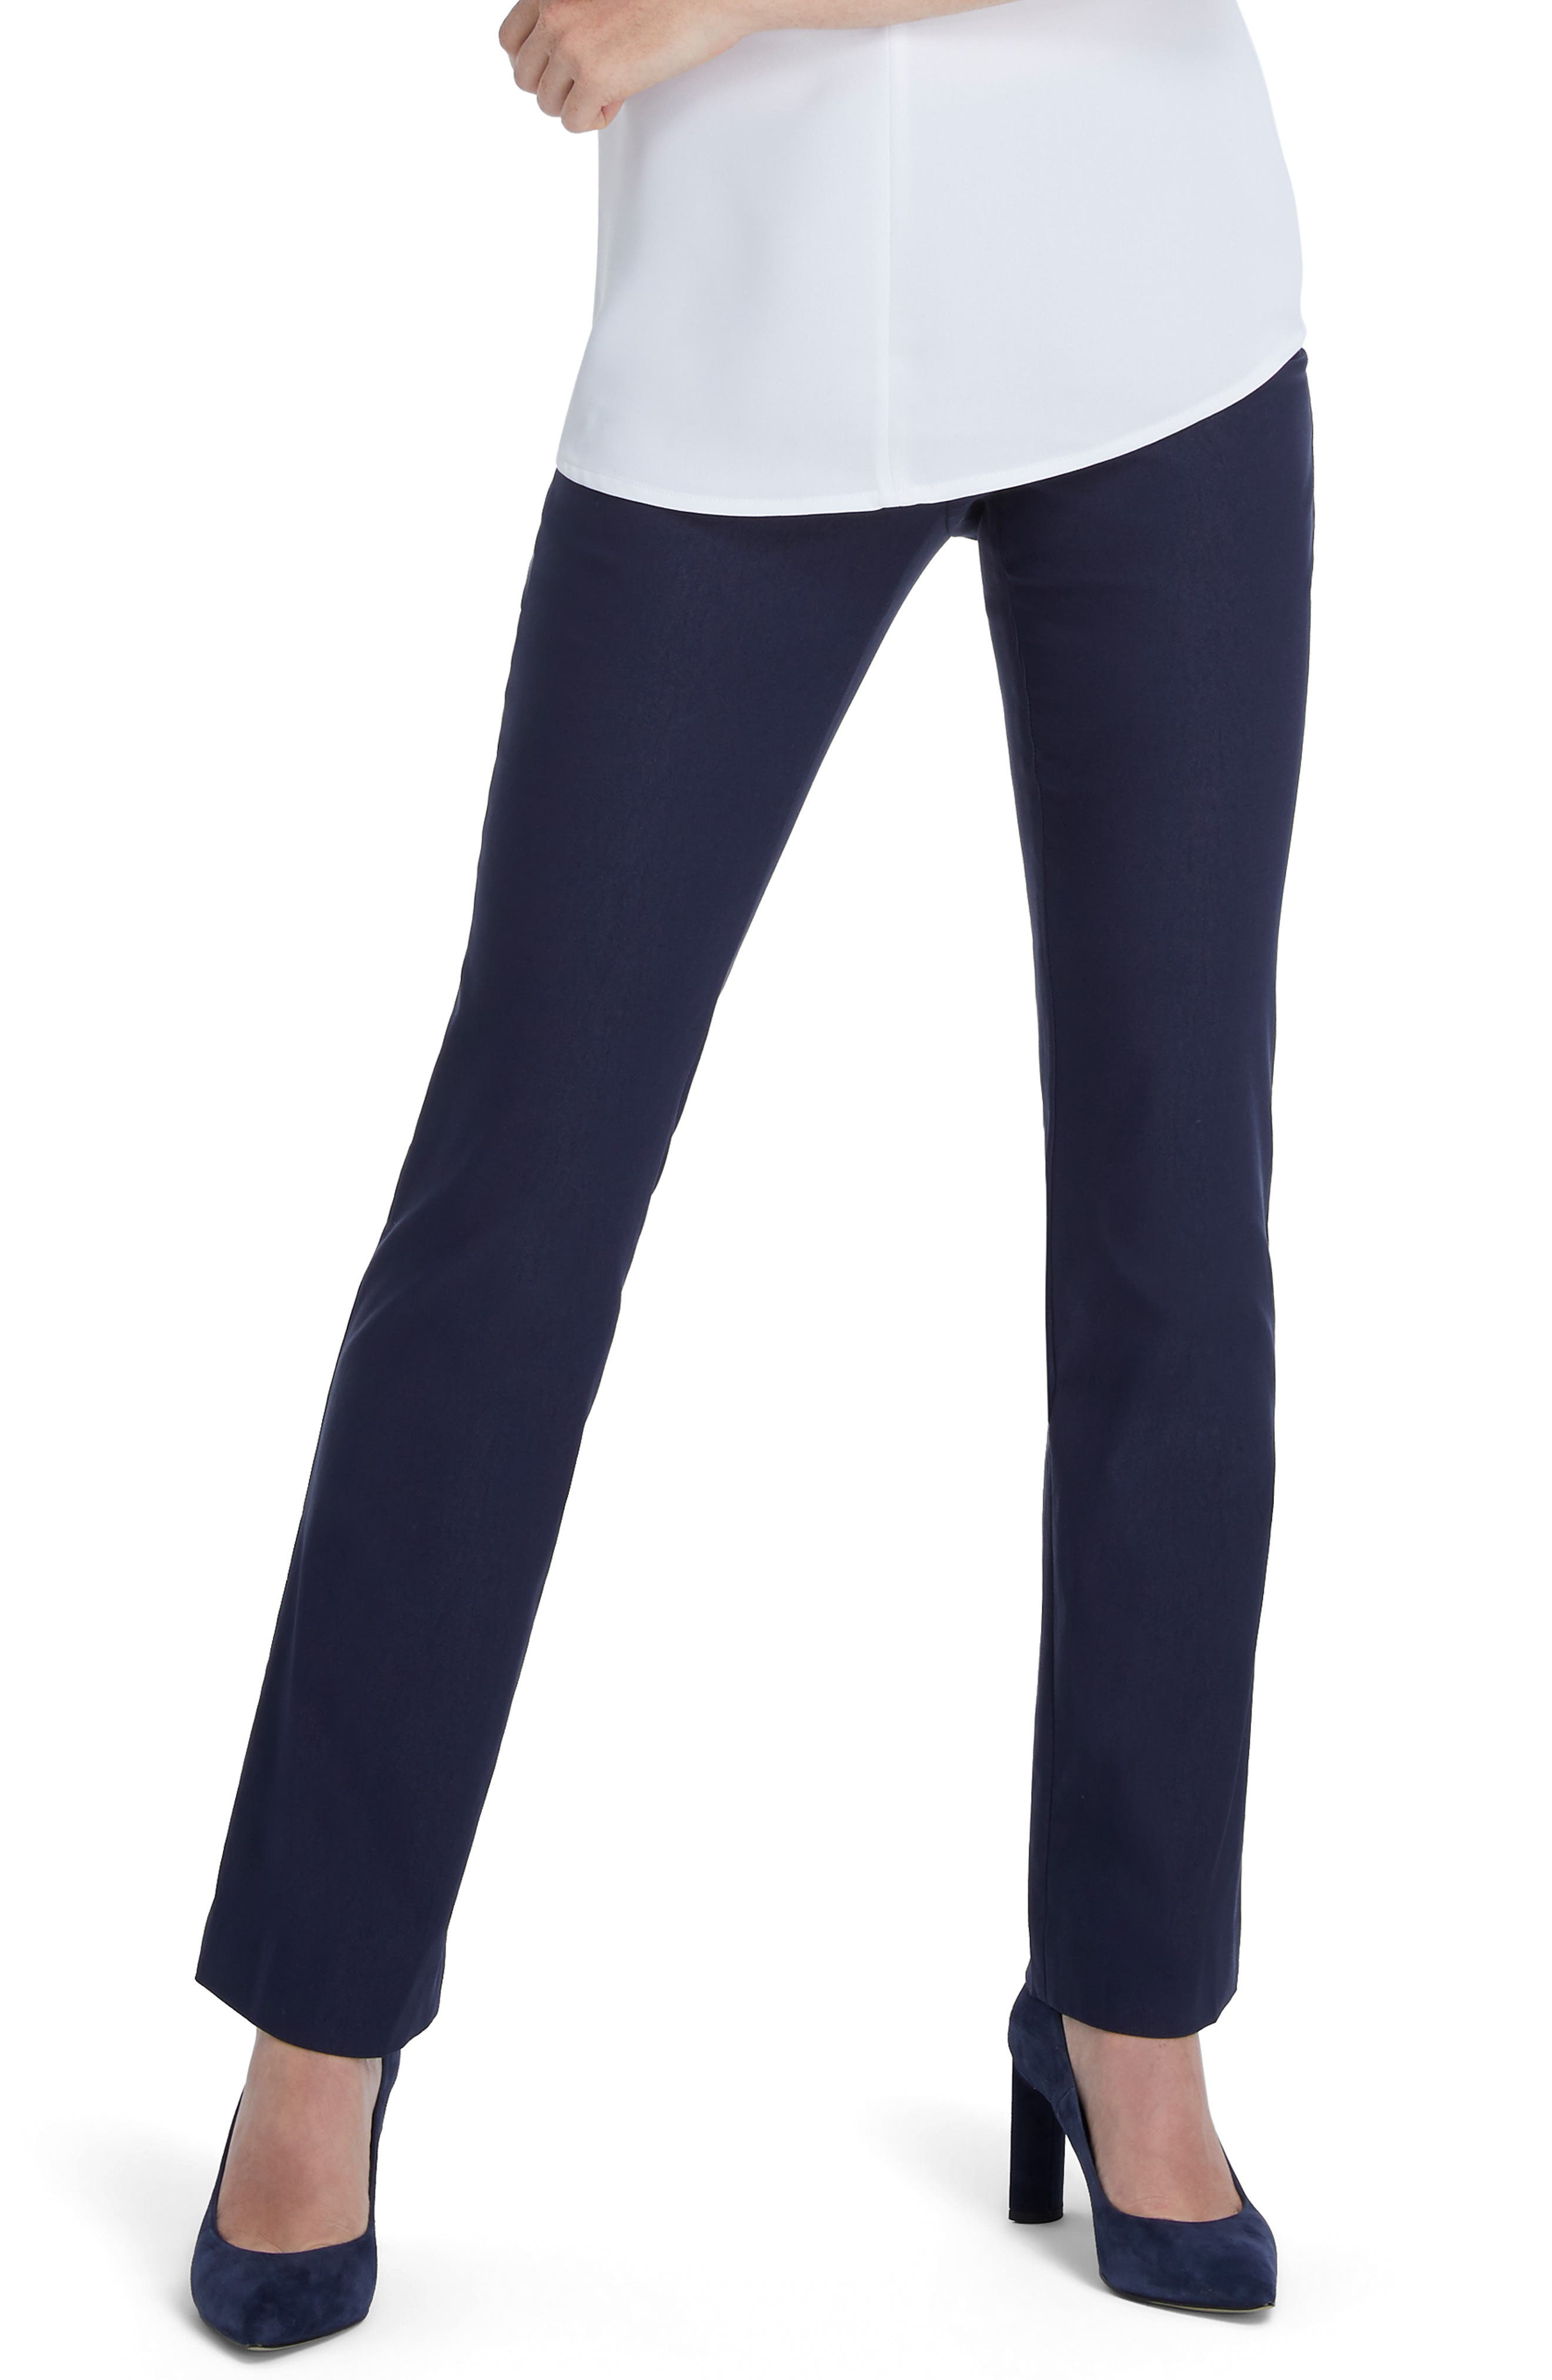 With a wide waistband, figure-friendly stretch and a cut that\\\'s relaxed in all the right places, these staple pants will feel great from coffee to cocktails. Style Name: Nic+Zoe Wonderstretch Bootcut Pants (Regular & Petite). Style Number: 5879325. Available in stores.